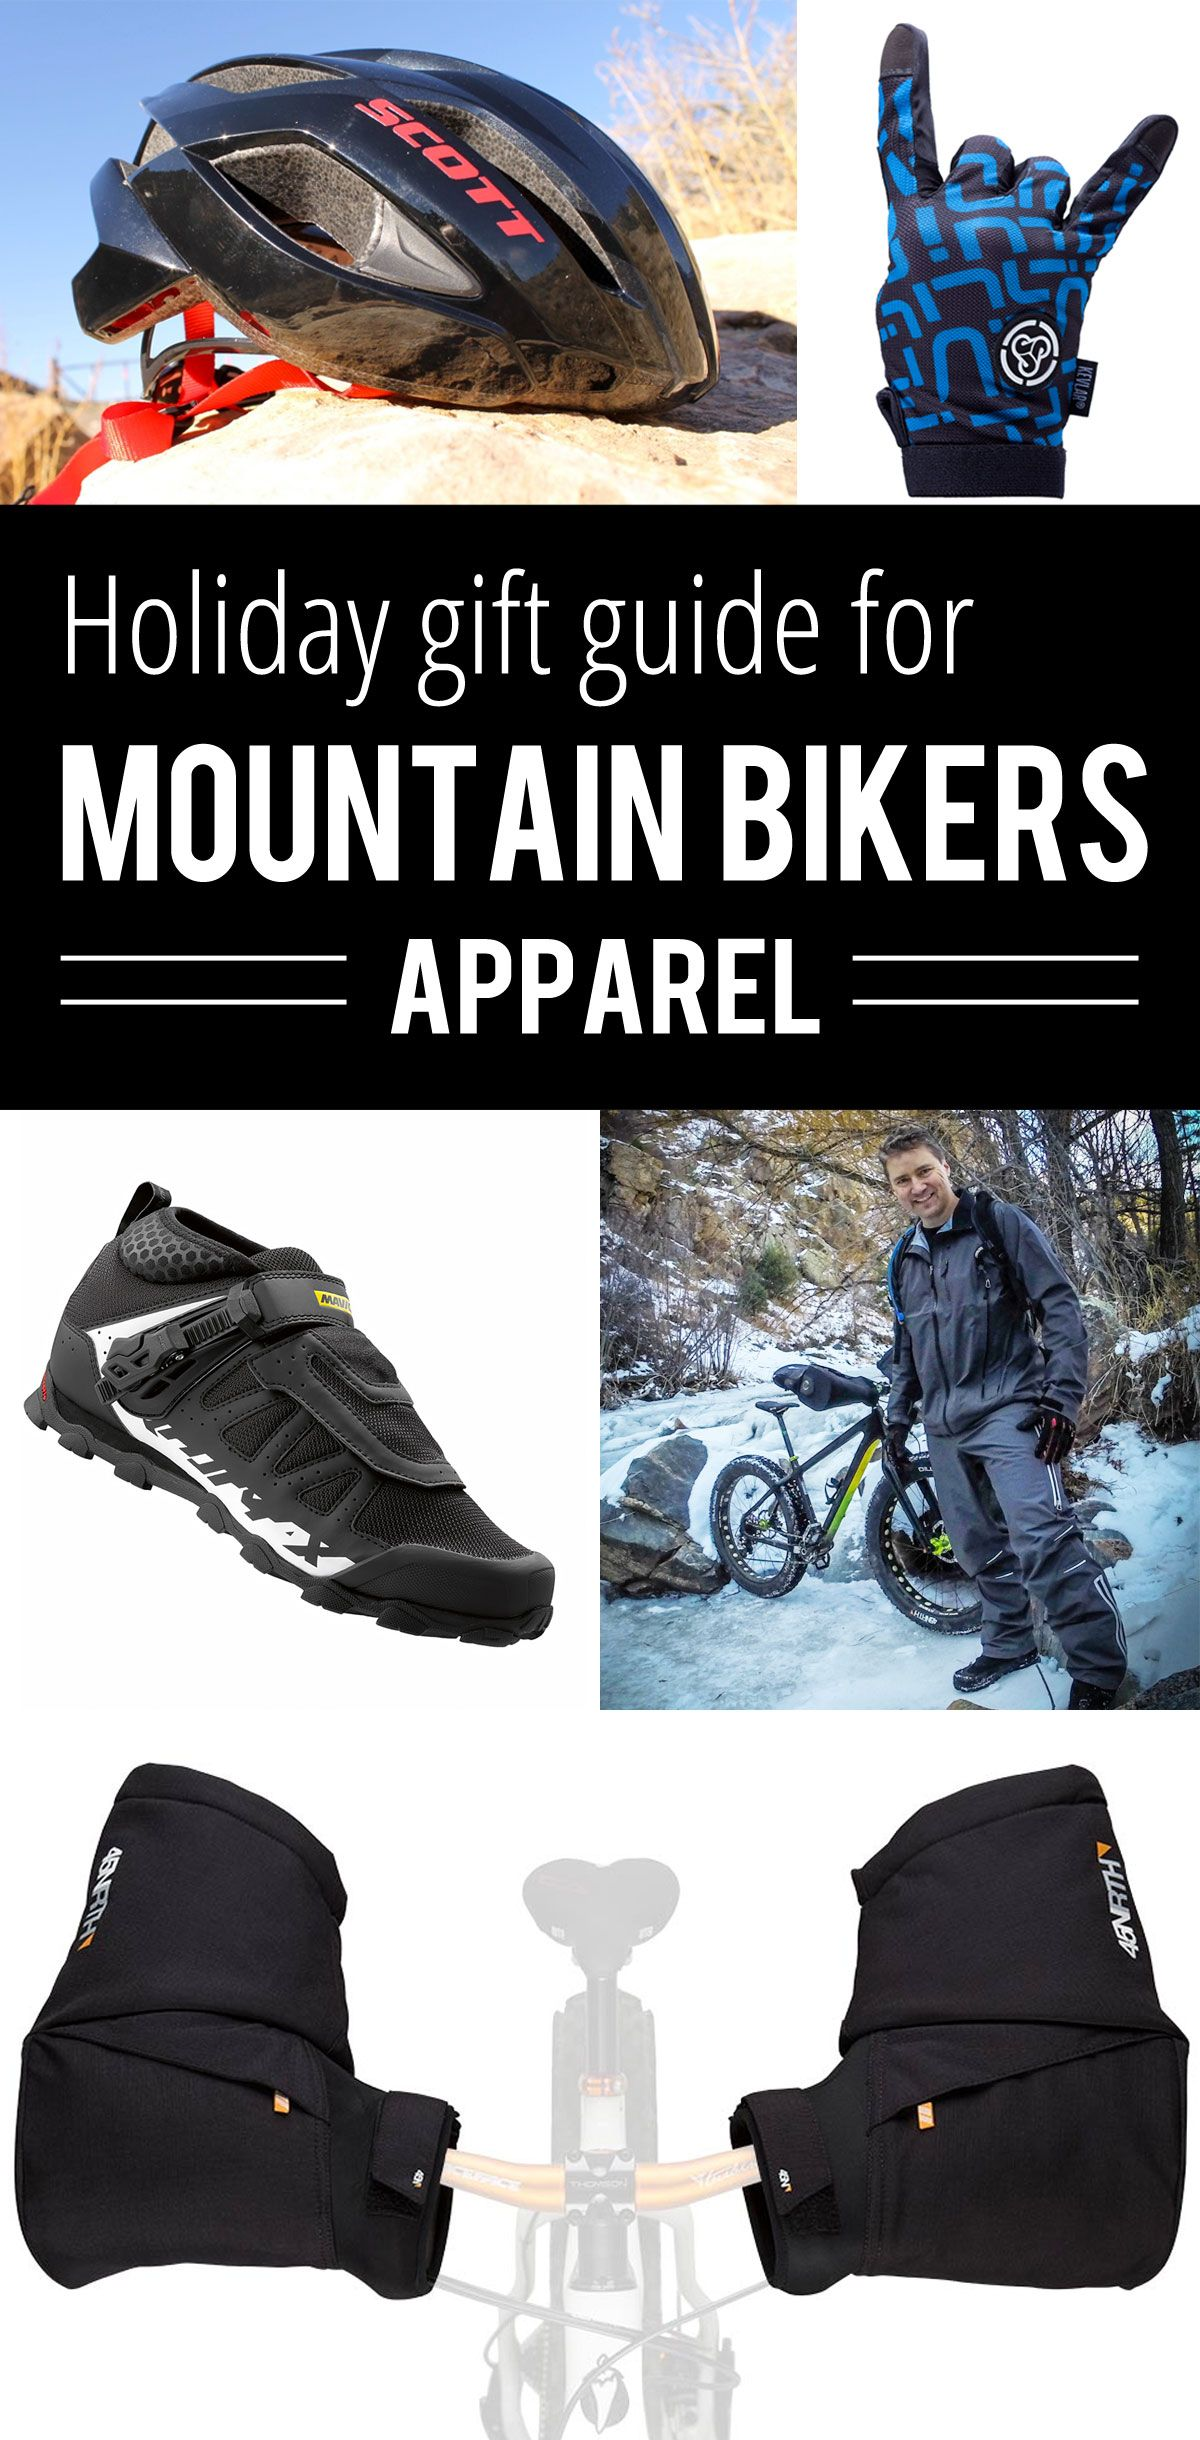 Holiday shopping for your mountain biking buddies got you stumped   Singletracks has selected these no-fail apparel products to gift your  cross-country 2fa7aa438